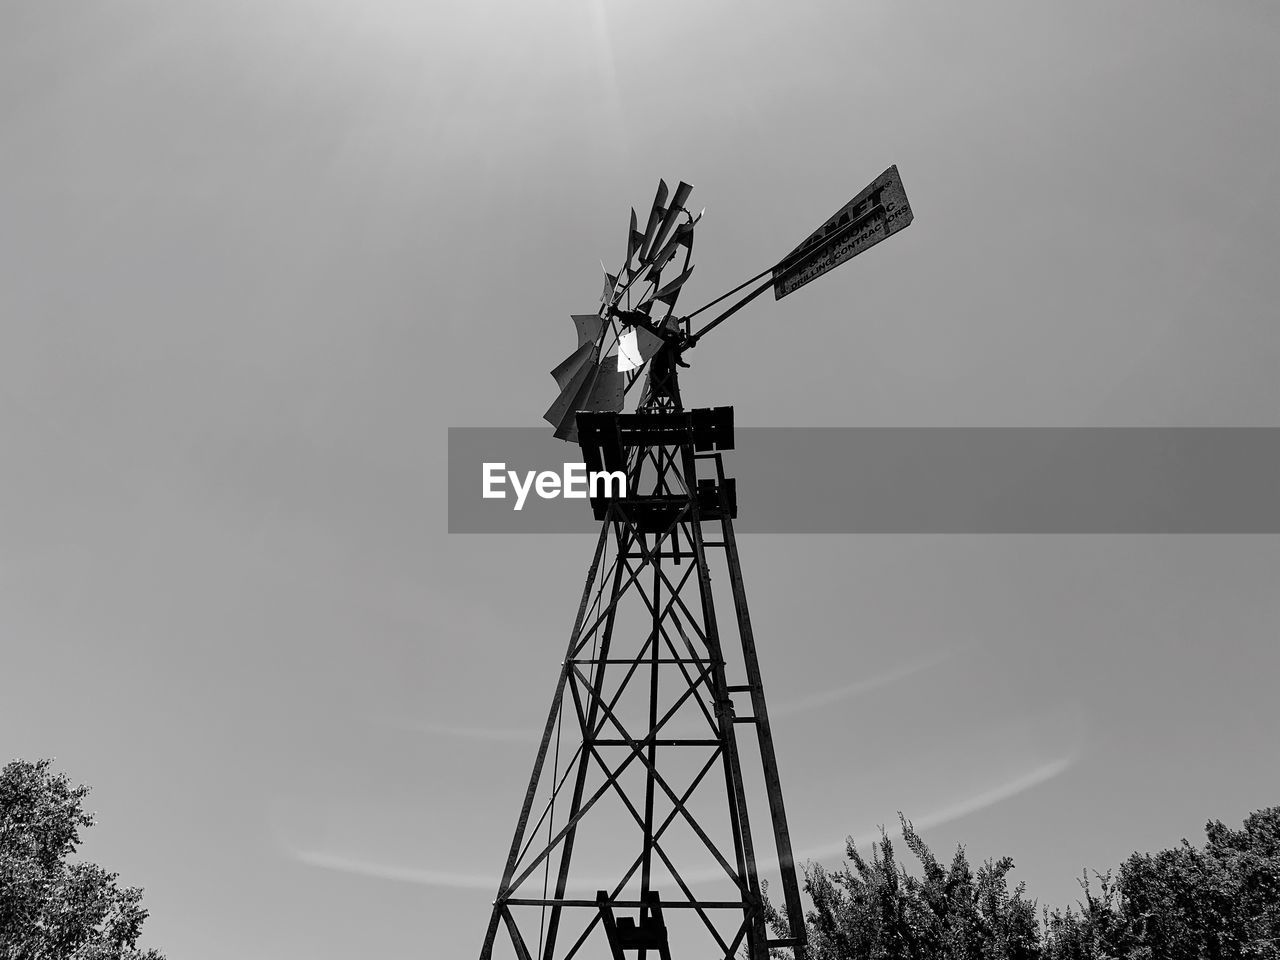 sky, renewable energy, low angle view, wind turbine, wind power, nature, turbine, alternative energy, fuel and power generation, environmental conservation, tree, traditional windmill, day, plant, architecture, no people, environment, outdoors, built structure, industry